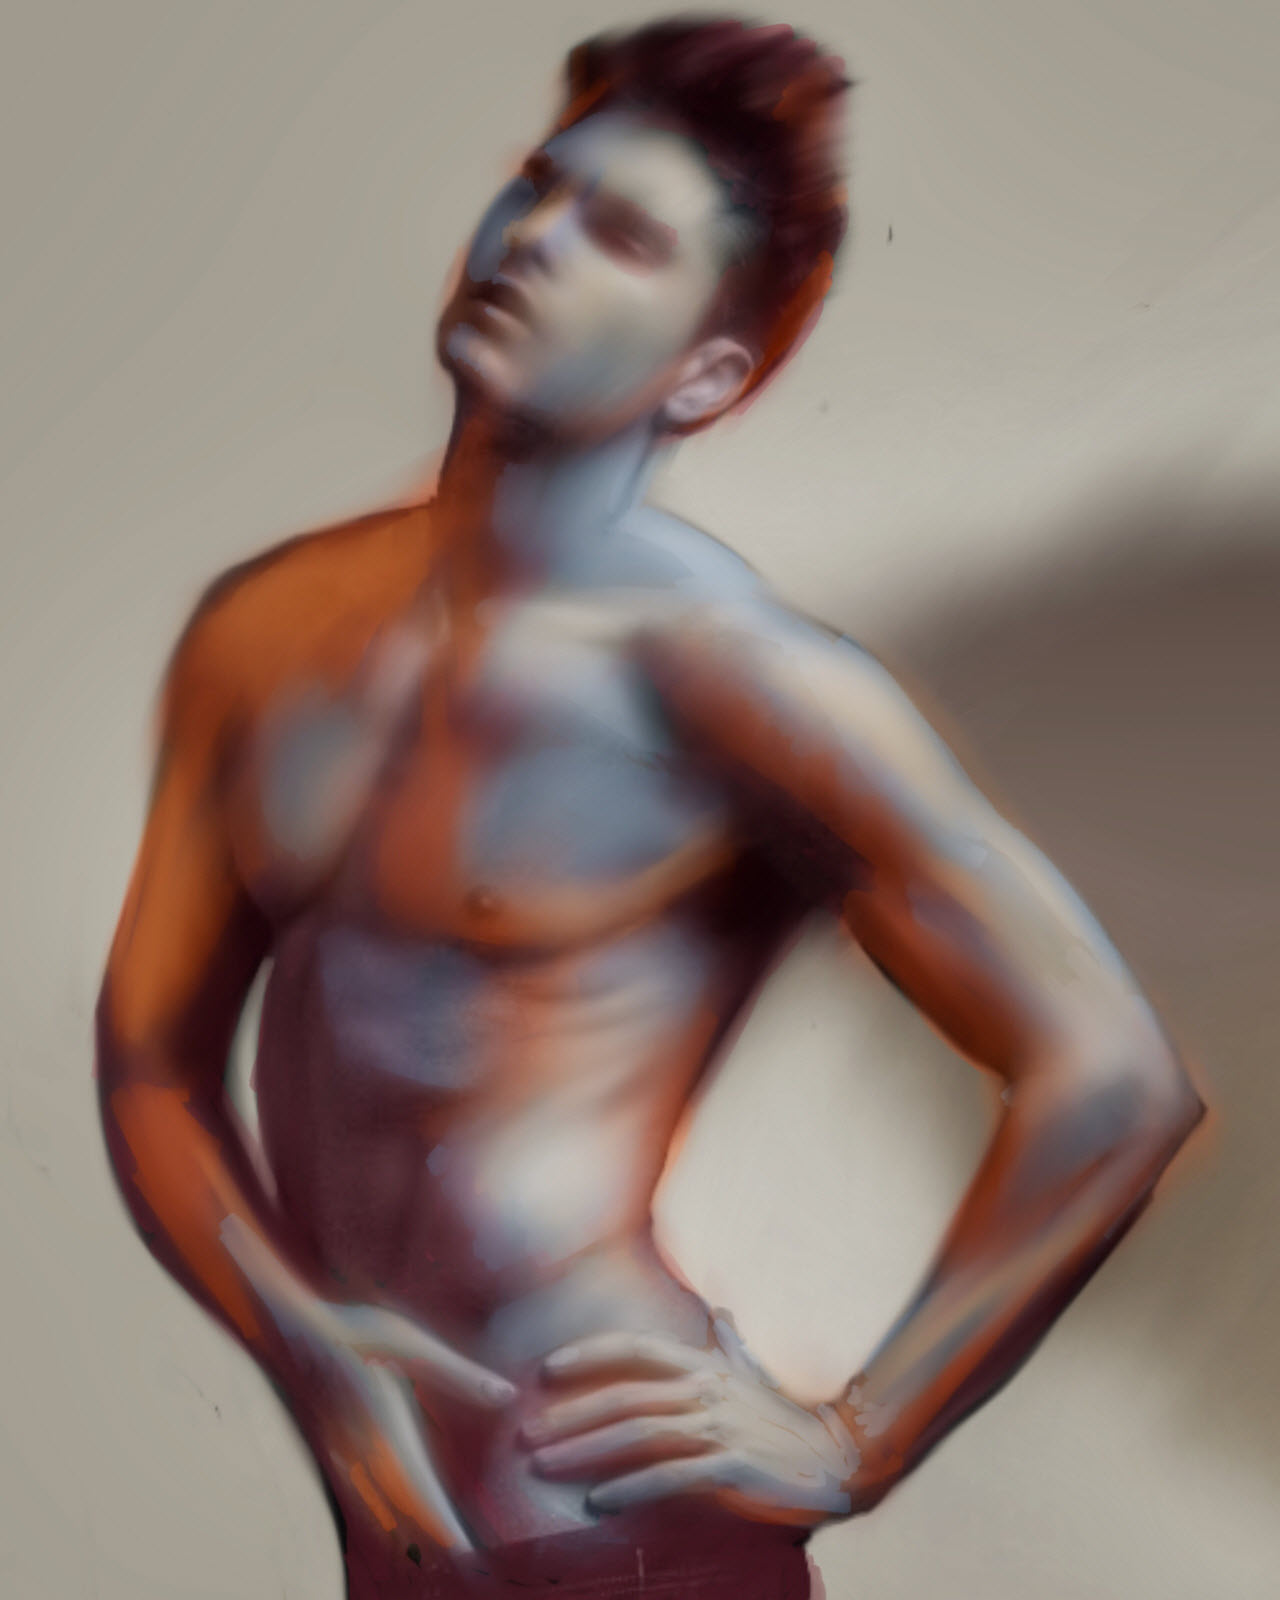 Male Figure 02 done with Procreate for the iPad